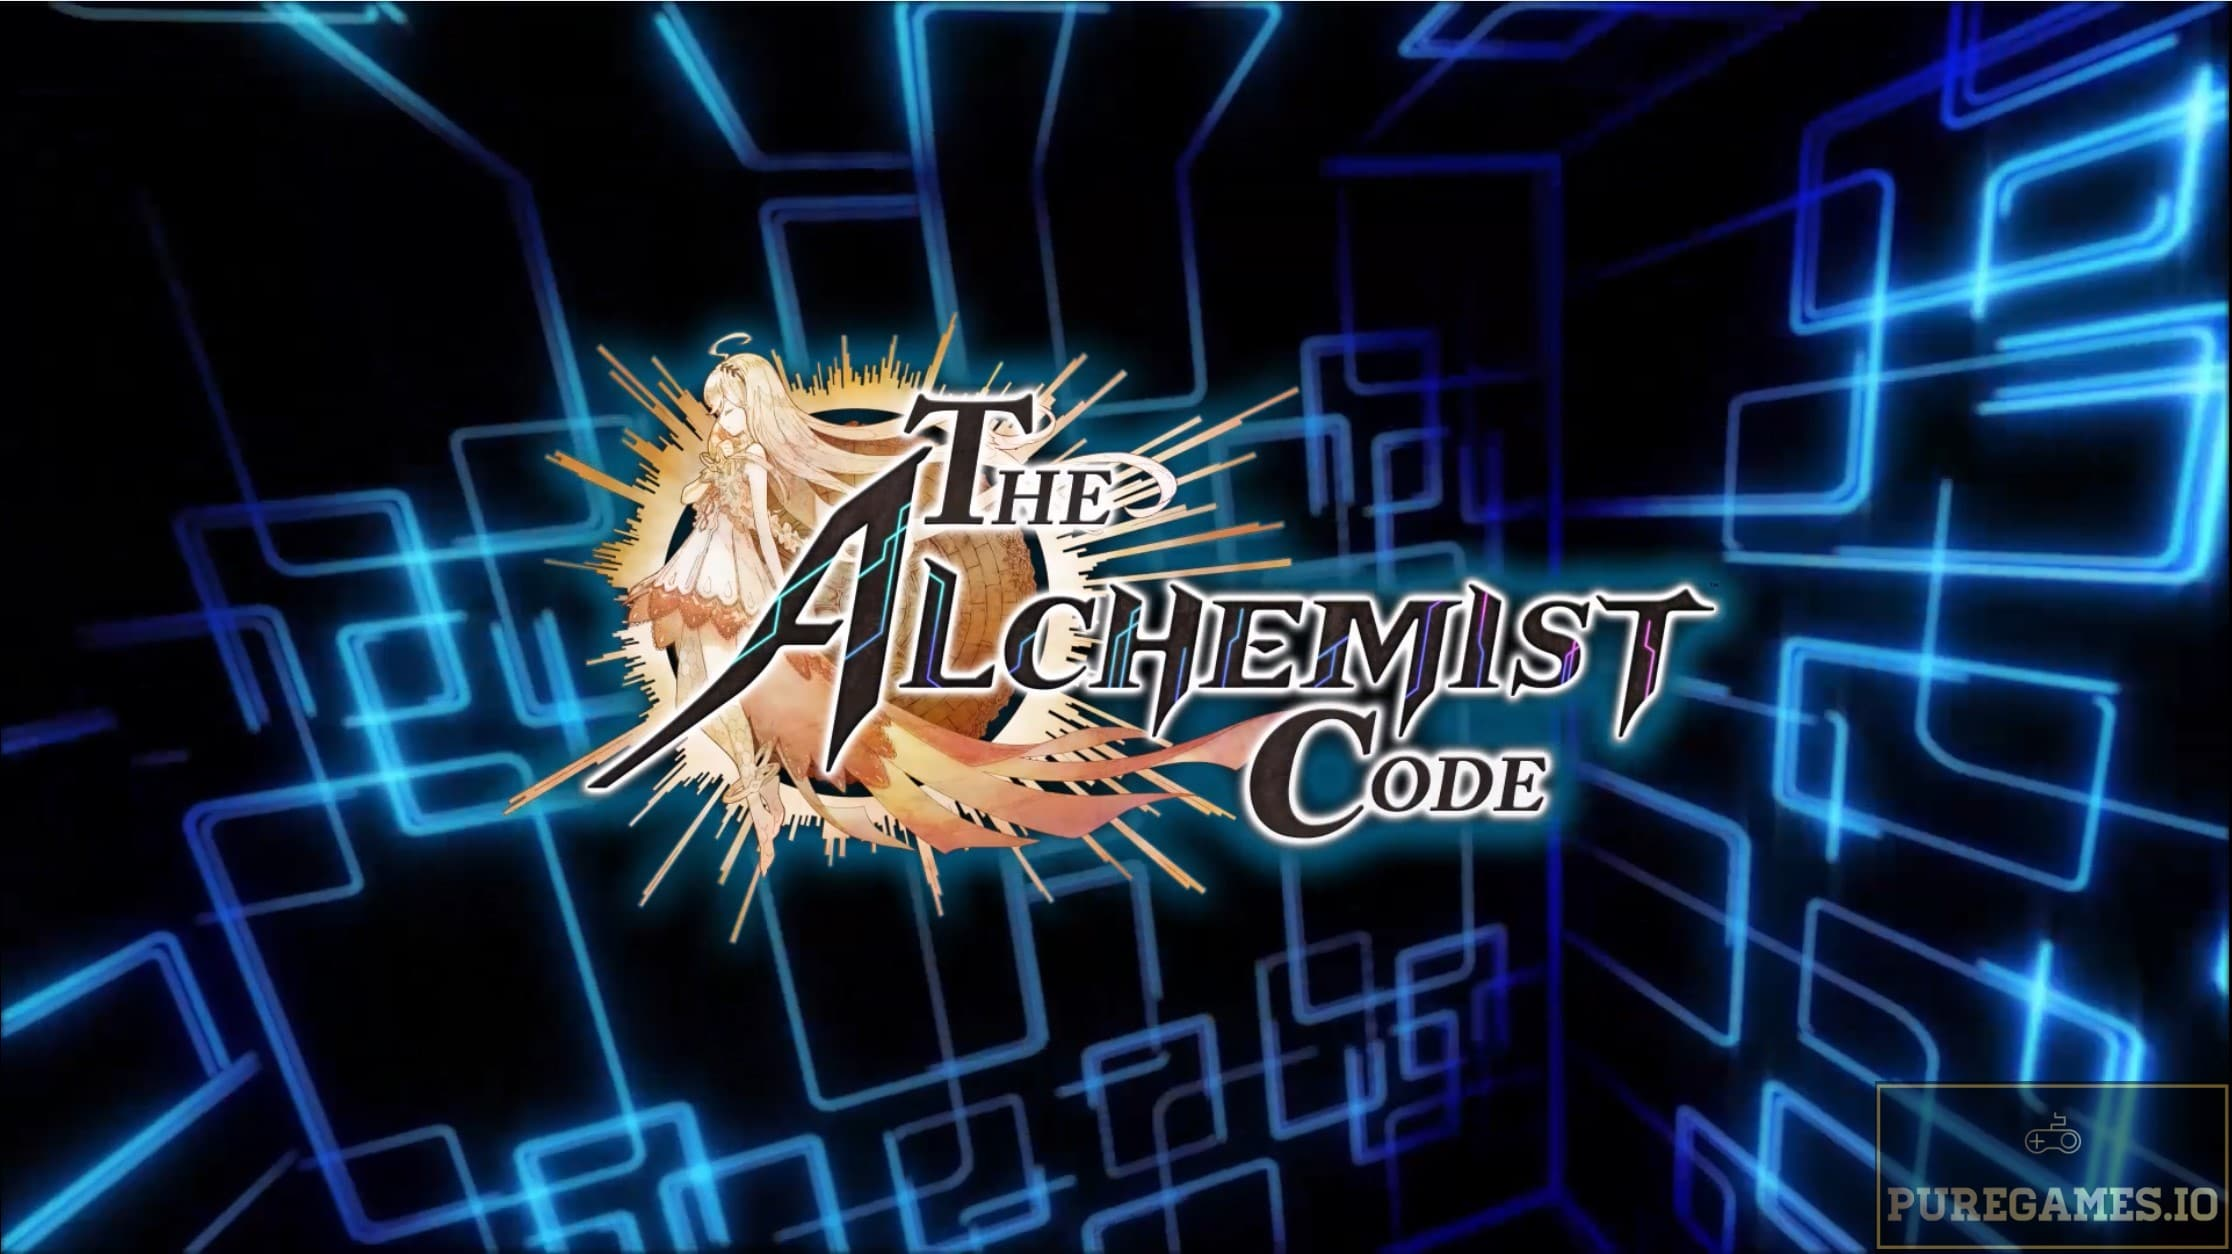 Download The Alchemist Code APK for Android/iOS 7